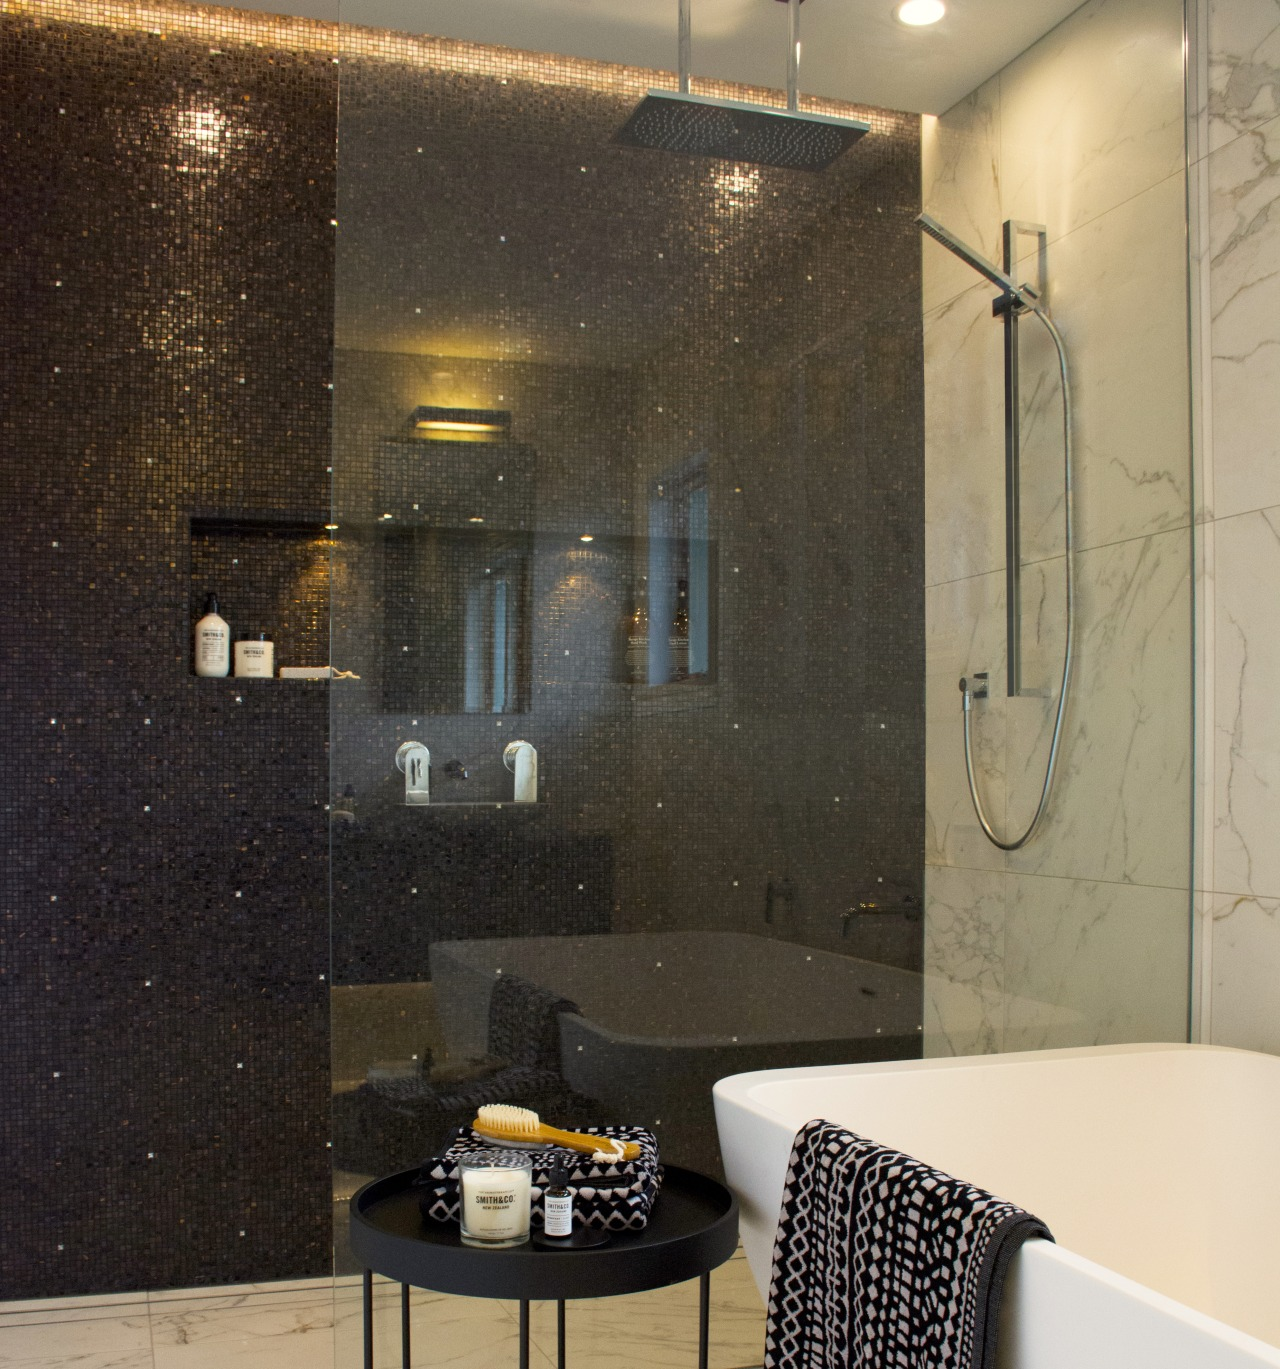 Black mosaics in the shower create contrast, and architecture, bathroom, bathroom accessory, building, ceiling, floor, flooring, furniture, glass, interior design, lighting, marble, plumbing fixture, property, room, shower, tap, tile, wall, black